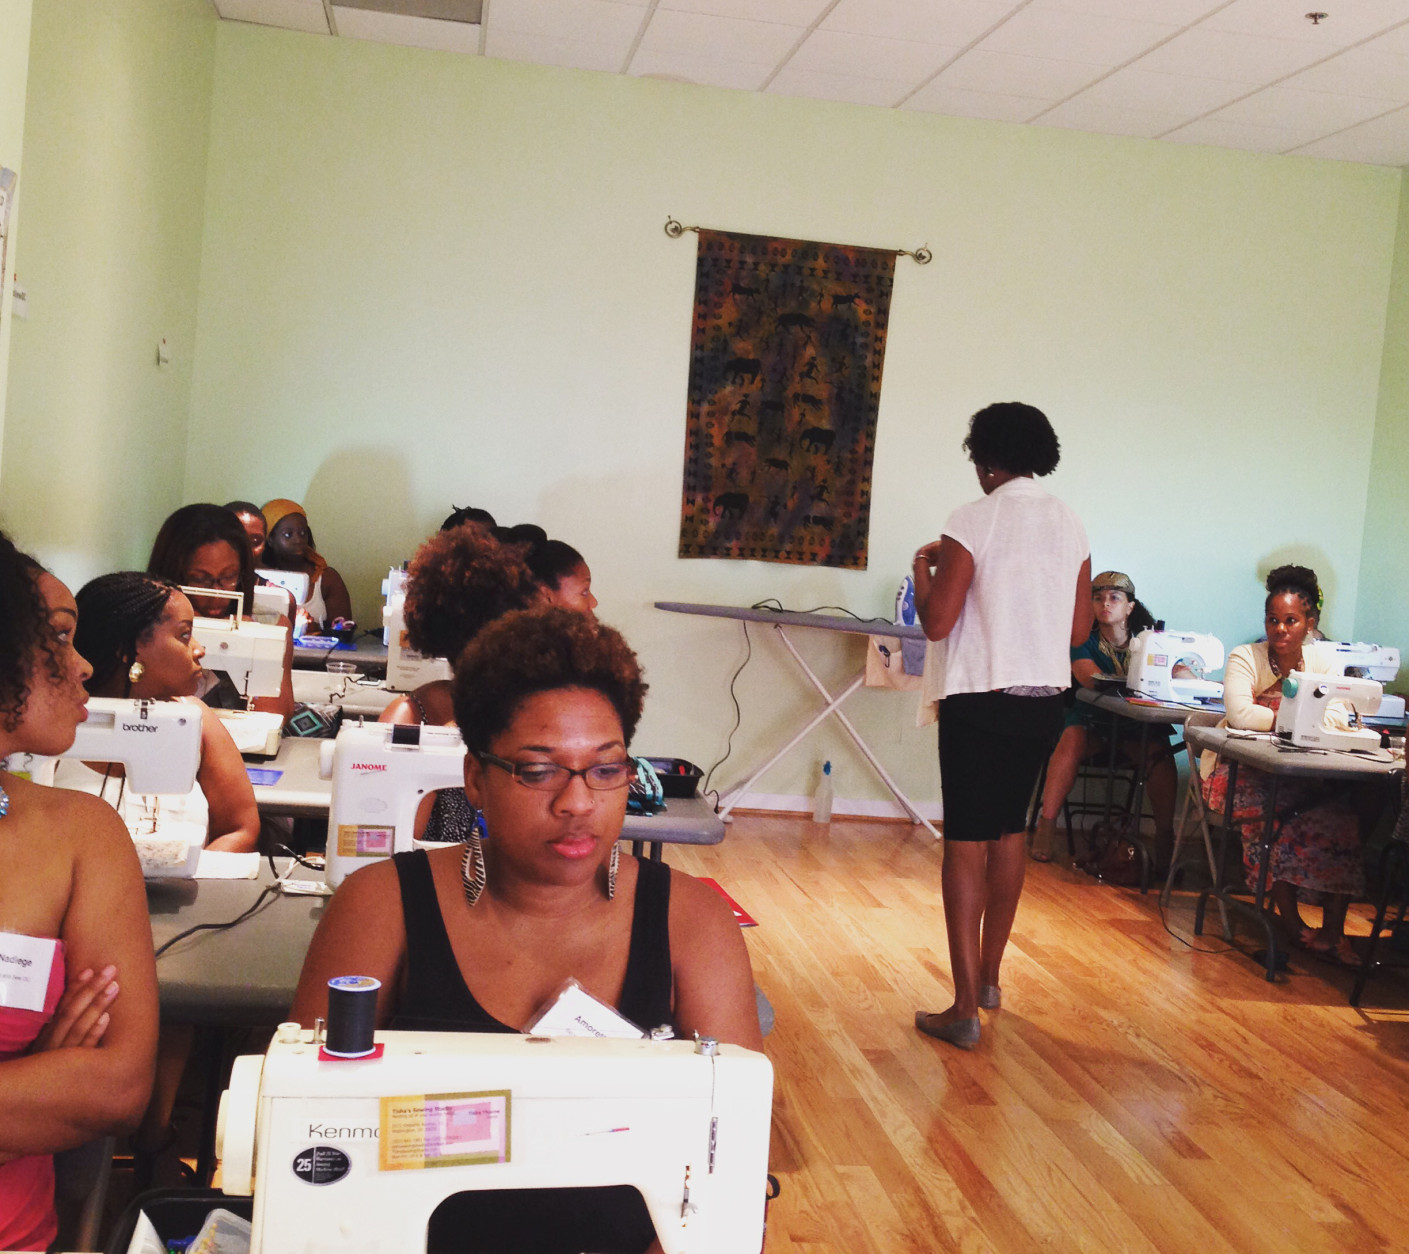 At Sip & Sew events, beginners learn to make a basic garments, like skirts and pants, with the extra help of wine. The events are held throughout the D.C. region. (Courtesy Sip & Sew DC)